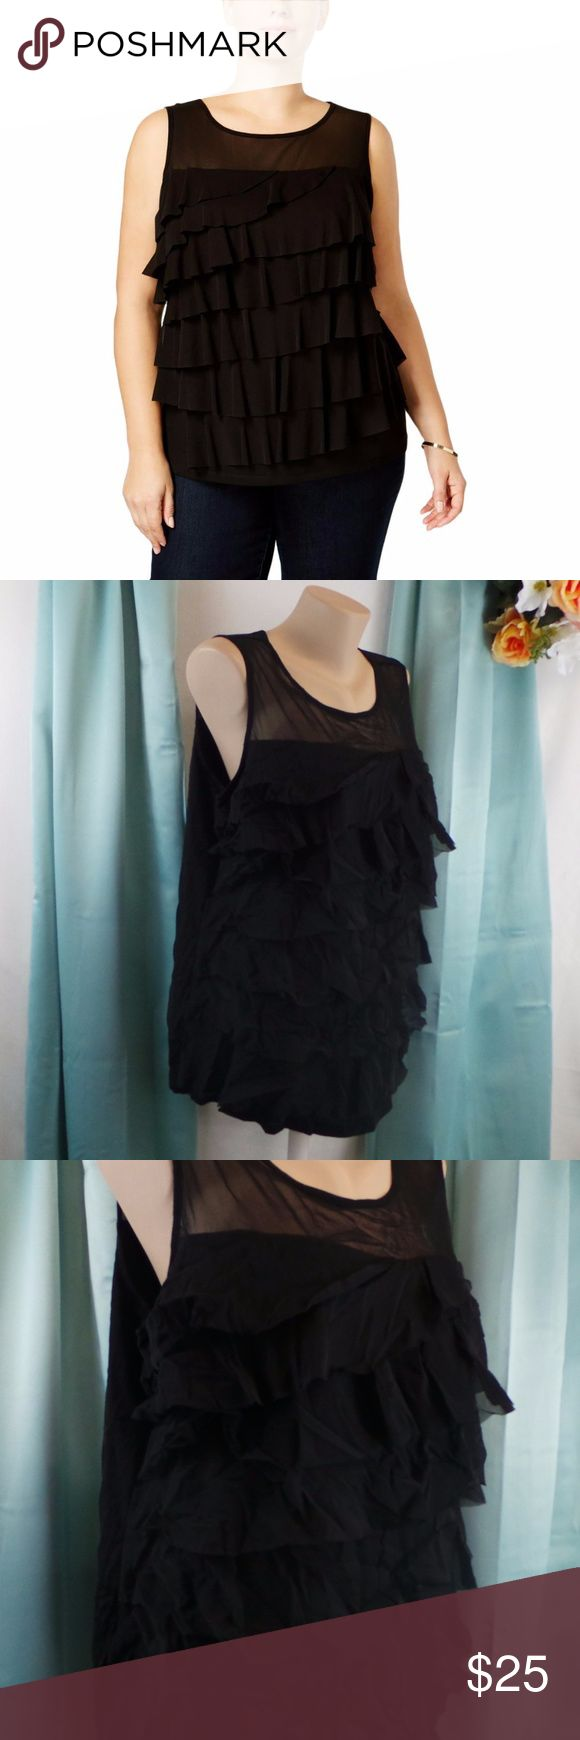 Sheer Ruffled Illusion Sleeveless Casual Top Plus Manufacturer: INC Sheer top with ruffled / layered bottom Retail: $59.50 Condition: New with tags Style Type: Knit Top Collection: INC Sleeve Length: Sleeveless Closure: Material: 100% Nylon Fabric Type: Nylon Specialty: Ruffled and layered look  706257154748 AD4 INC International Concepts Tops Tank Tops